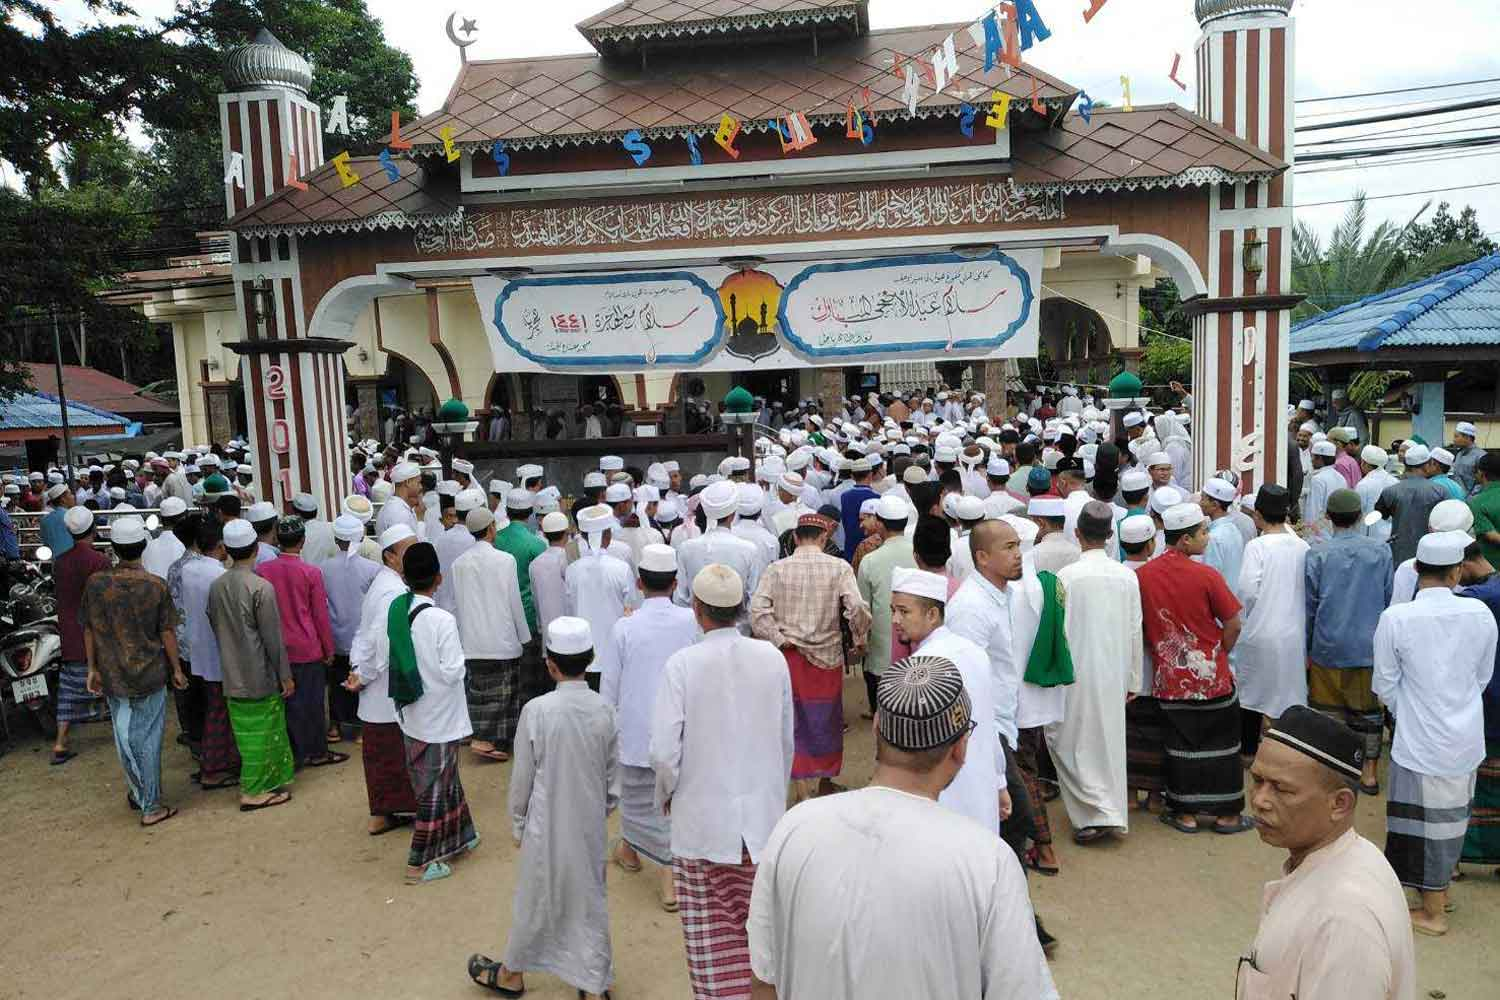 Several thousand local Muslims attend the funeral of insurgent suspect Abdulloh Esomusor at the Miftahul Jannah mosque in tambon Tabing of Sai Buri district, Pattani, on Monday morning. (Photo by Abdulloh Benjakat)